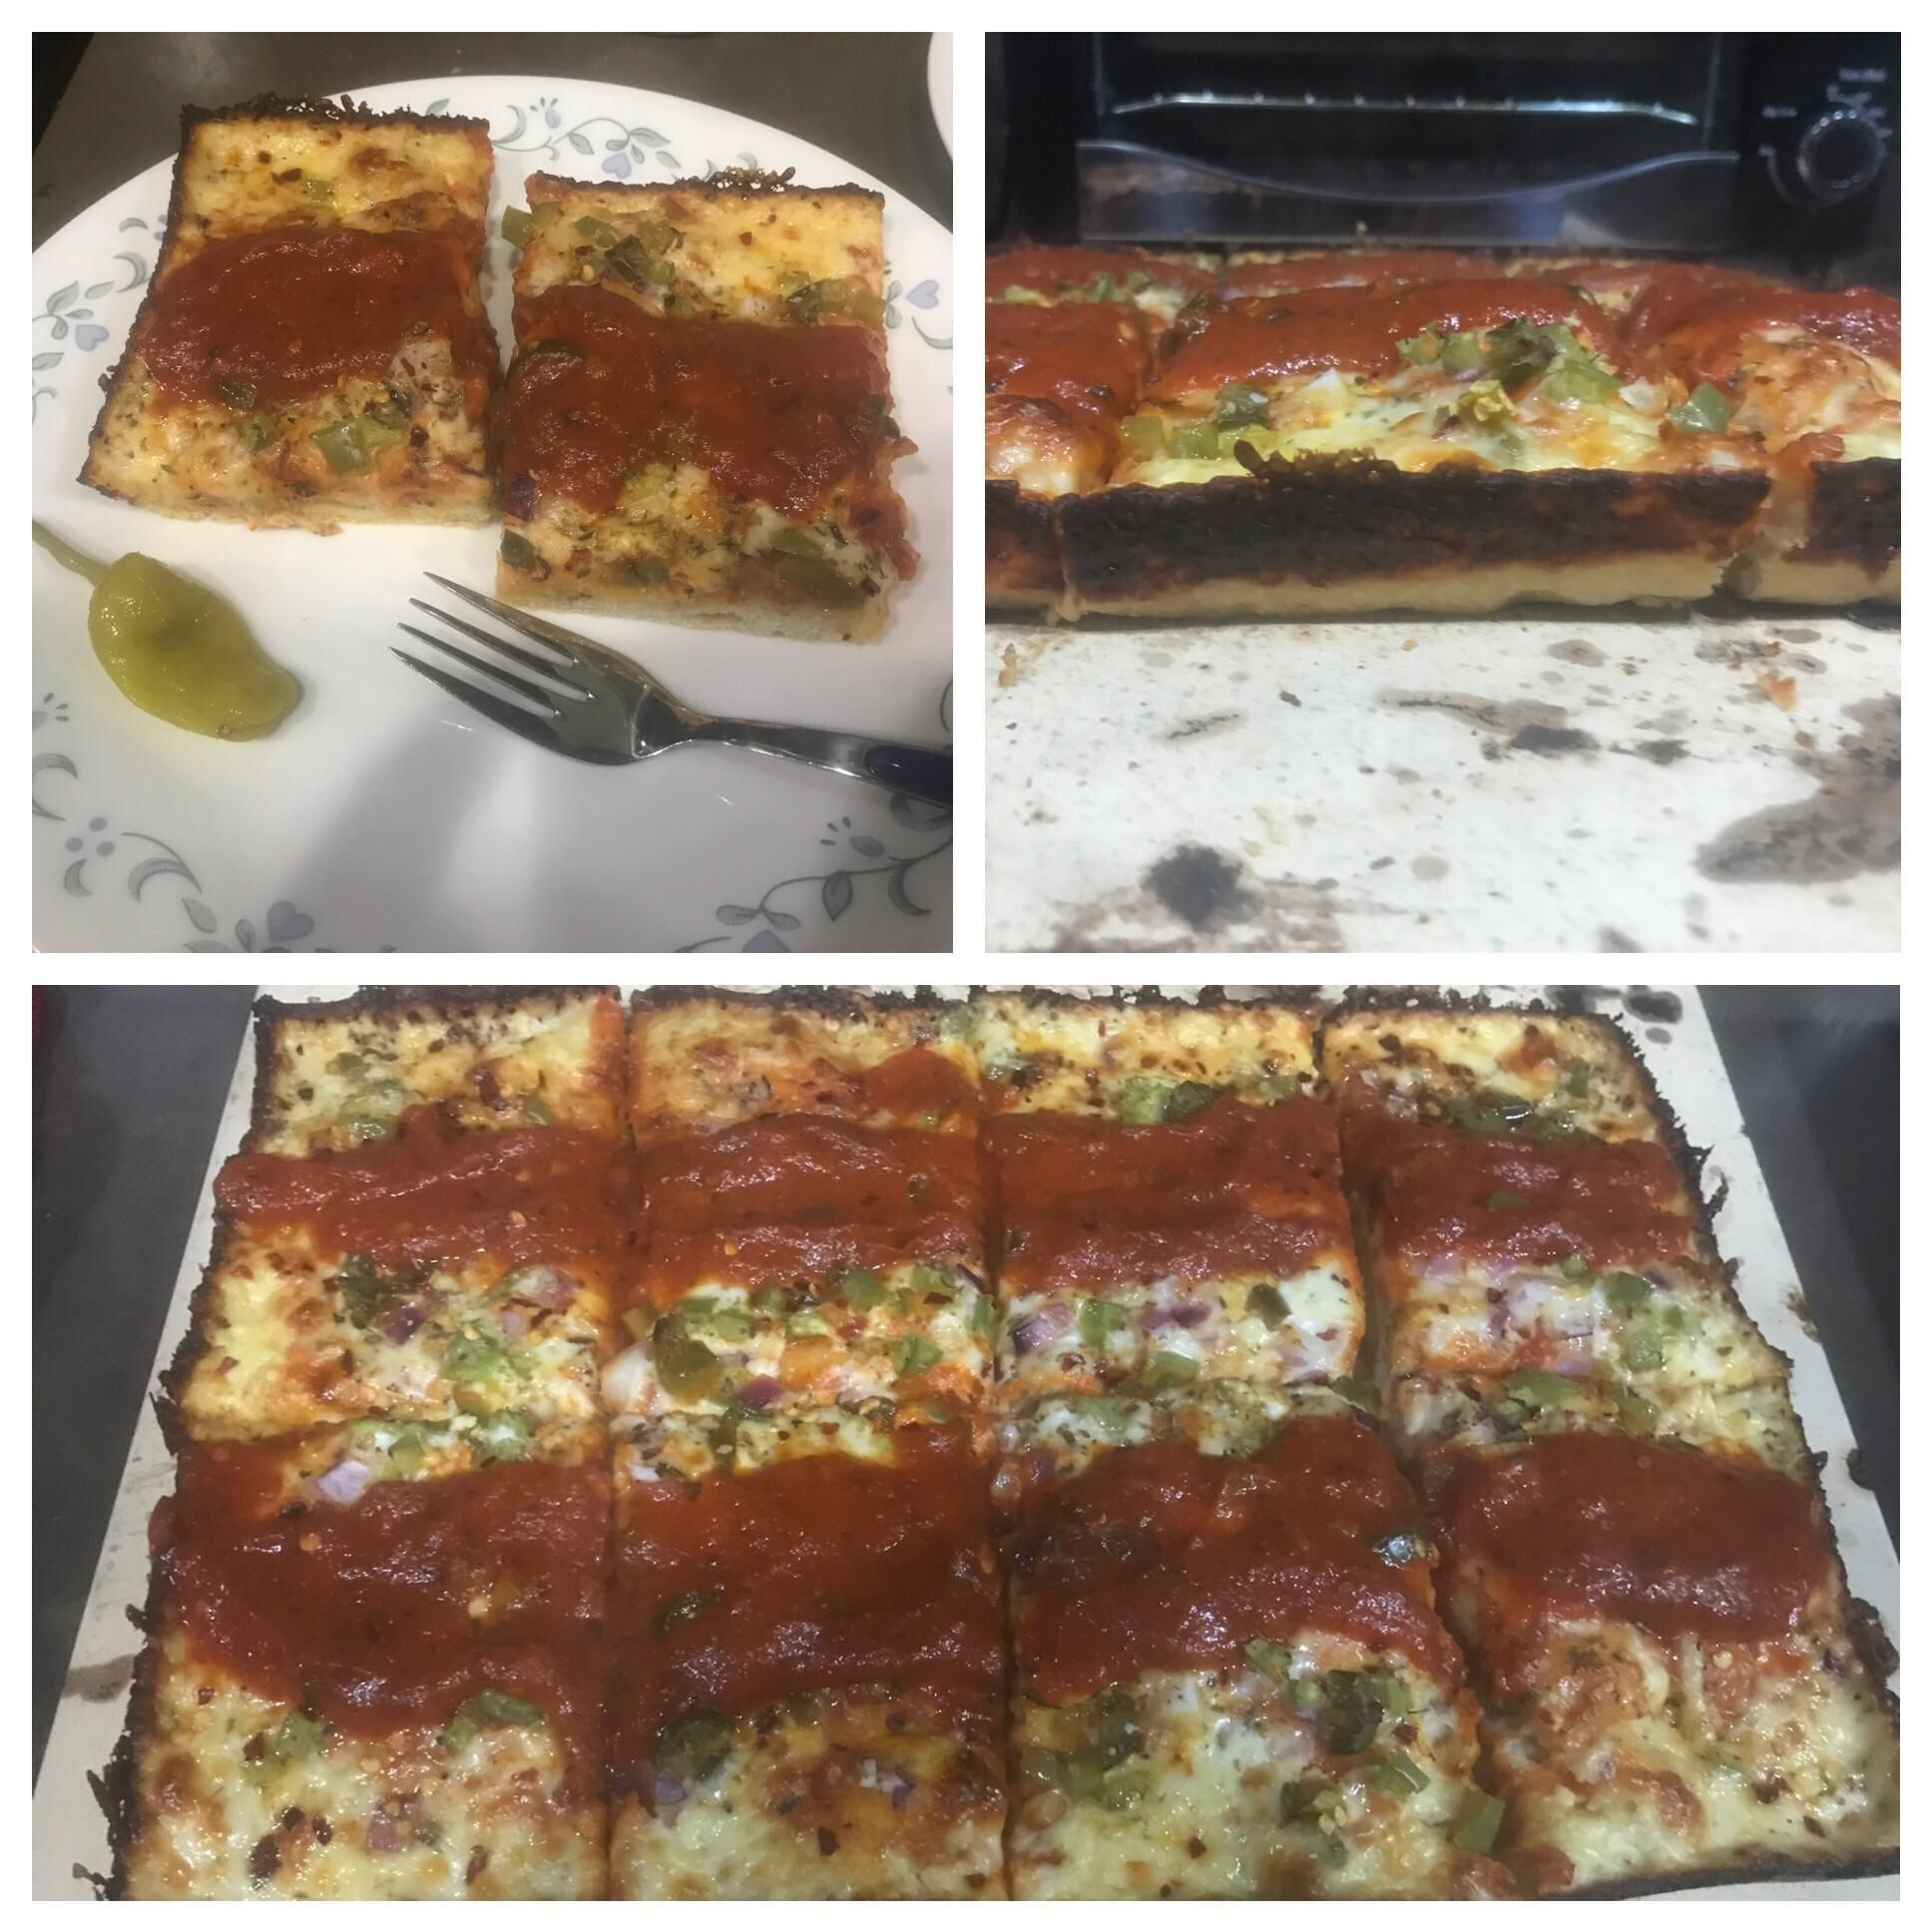 Made my first Detroit style pizza. Rectangle pie Wisconsin brick Cheese carmelized cheese crust and two strips of sauce on top! #pizza #food #foodporn #yummy #love #dinner #salsa #recipe